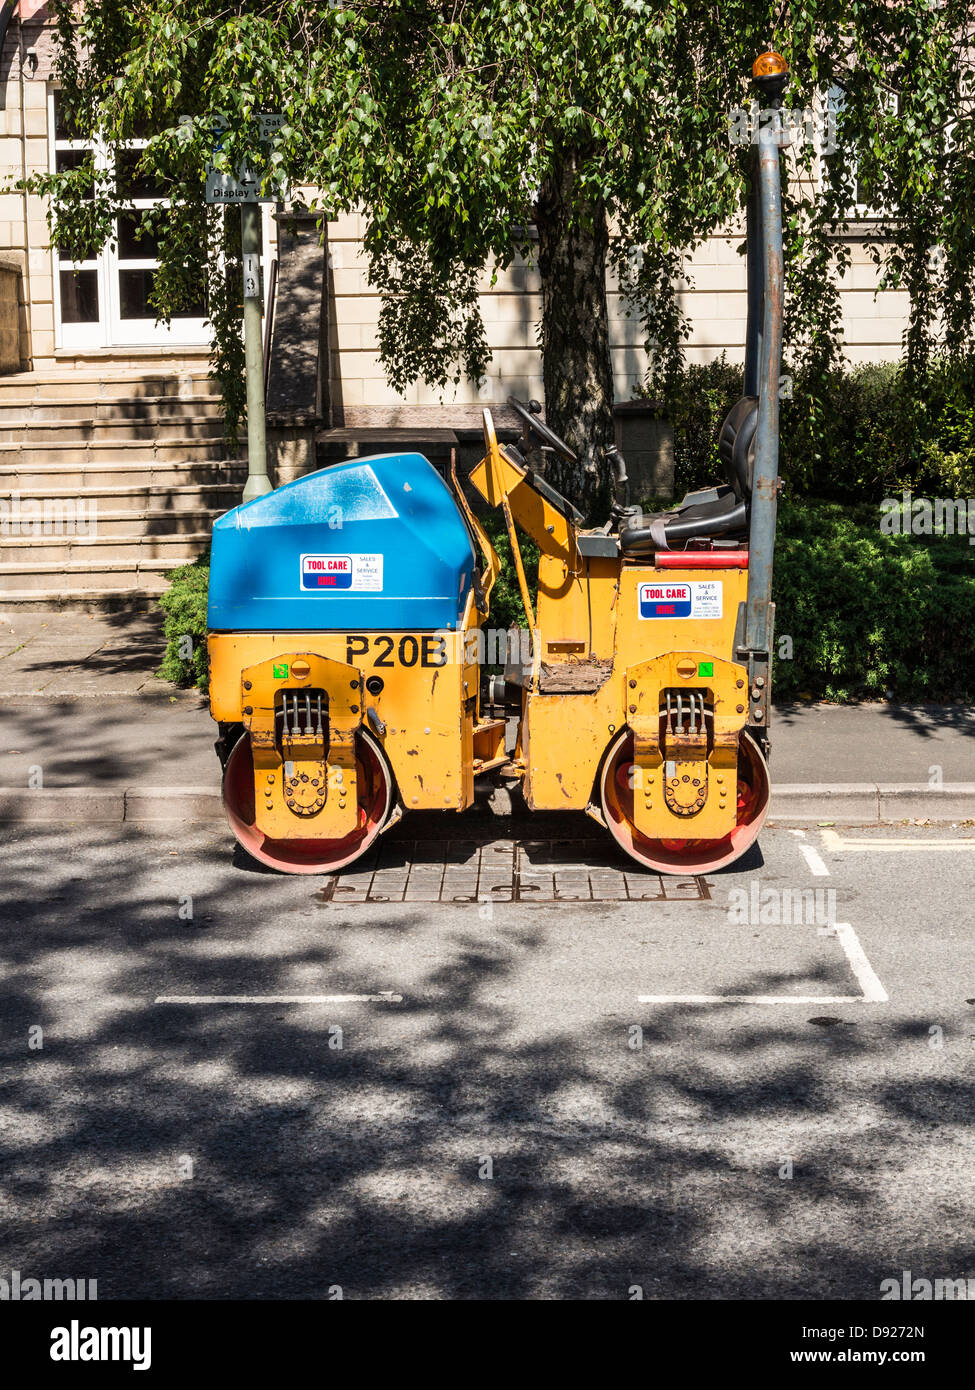 Road roller parked in parking bay on a road, Exeter, Devon, England - Stock Image